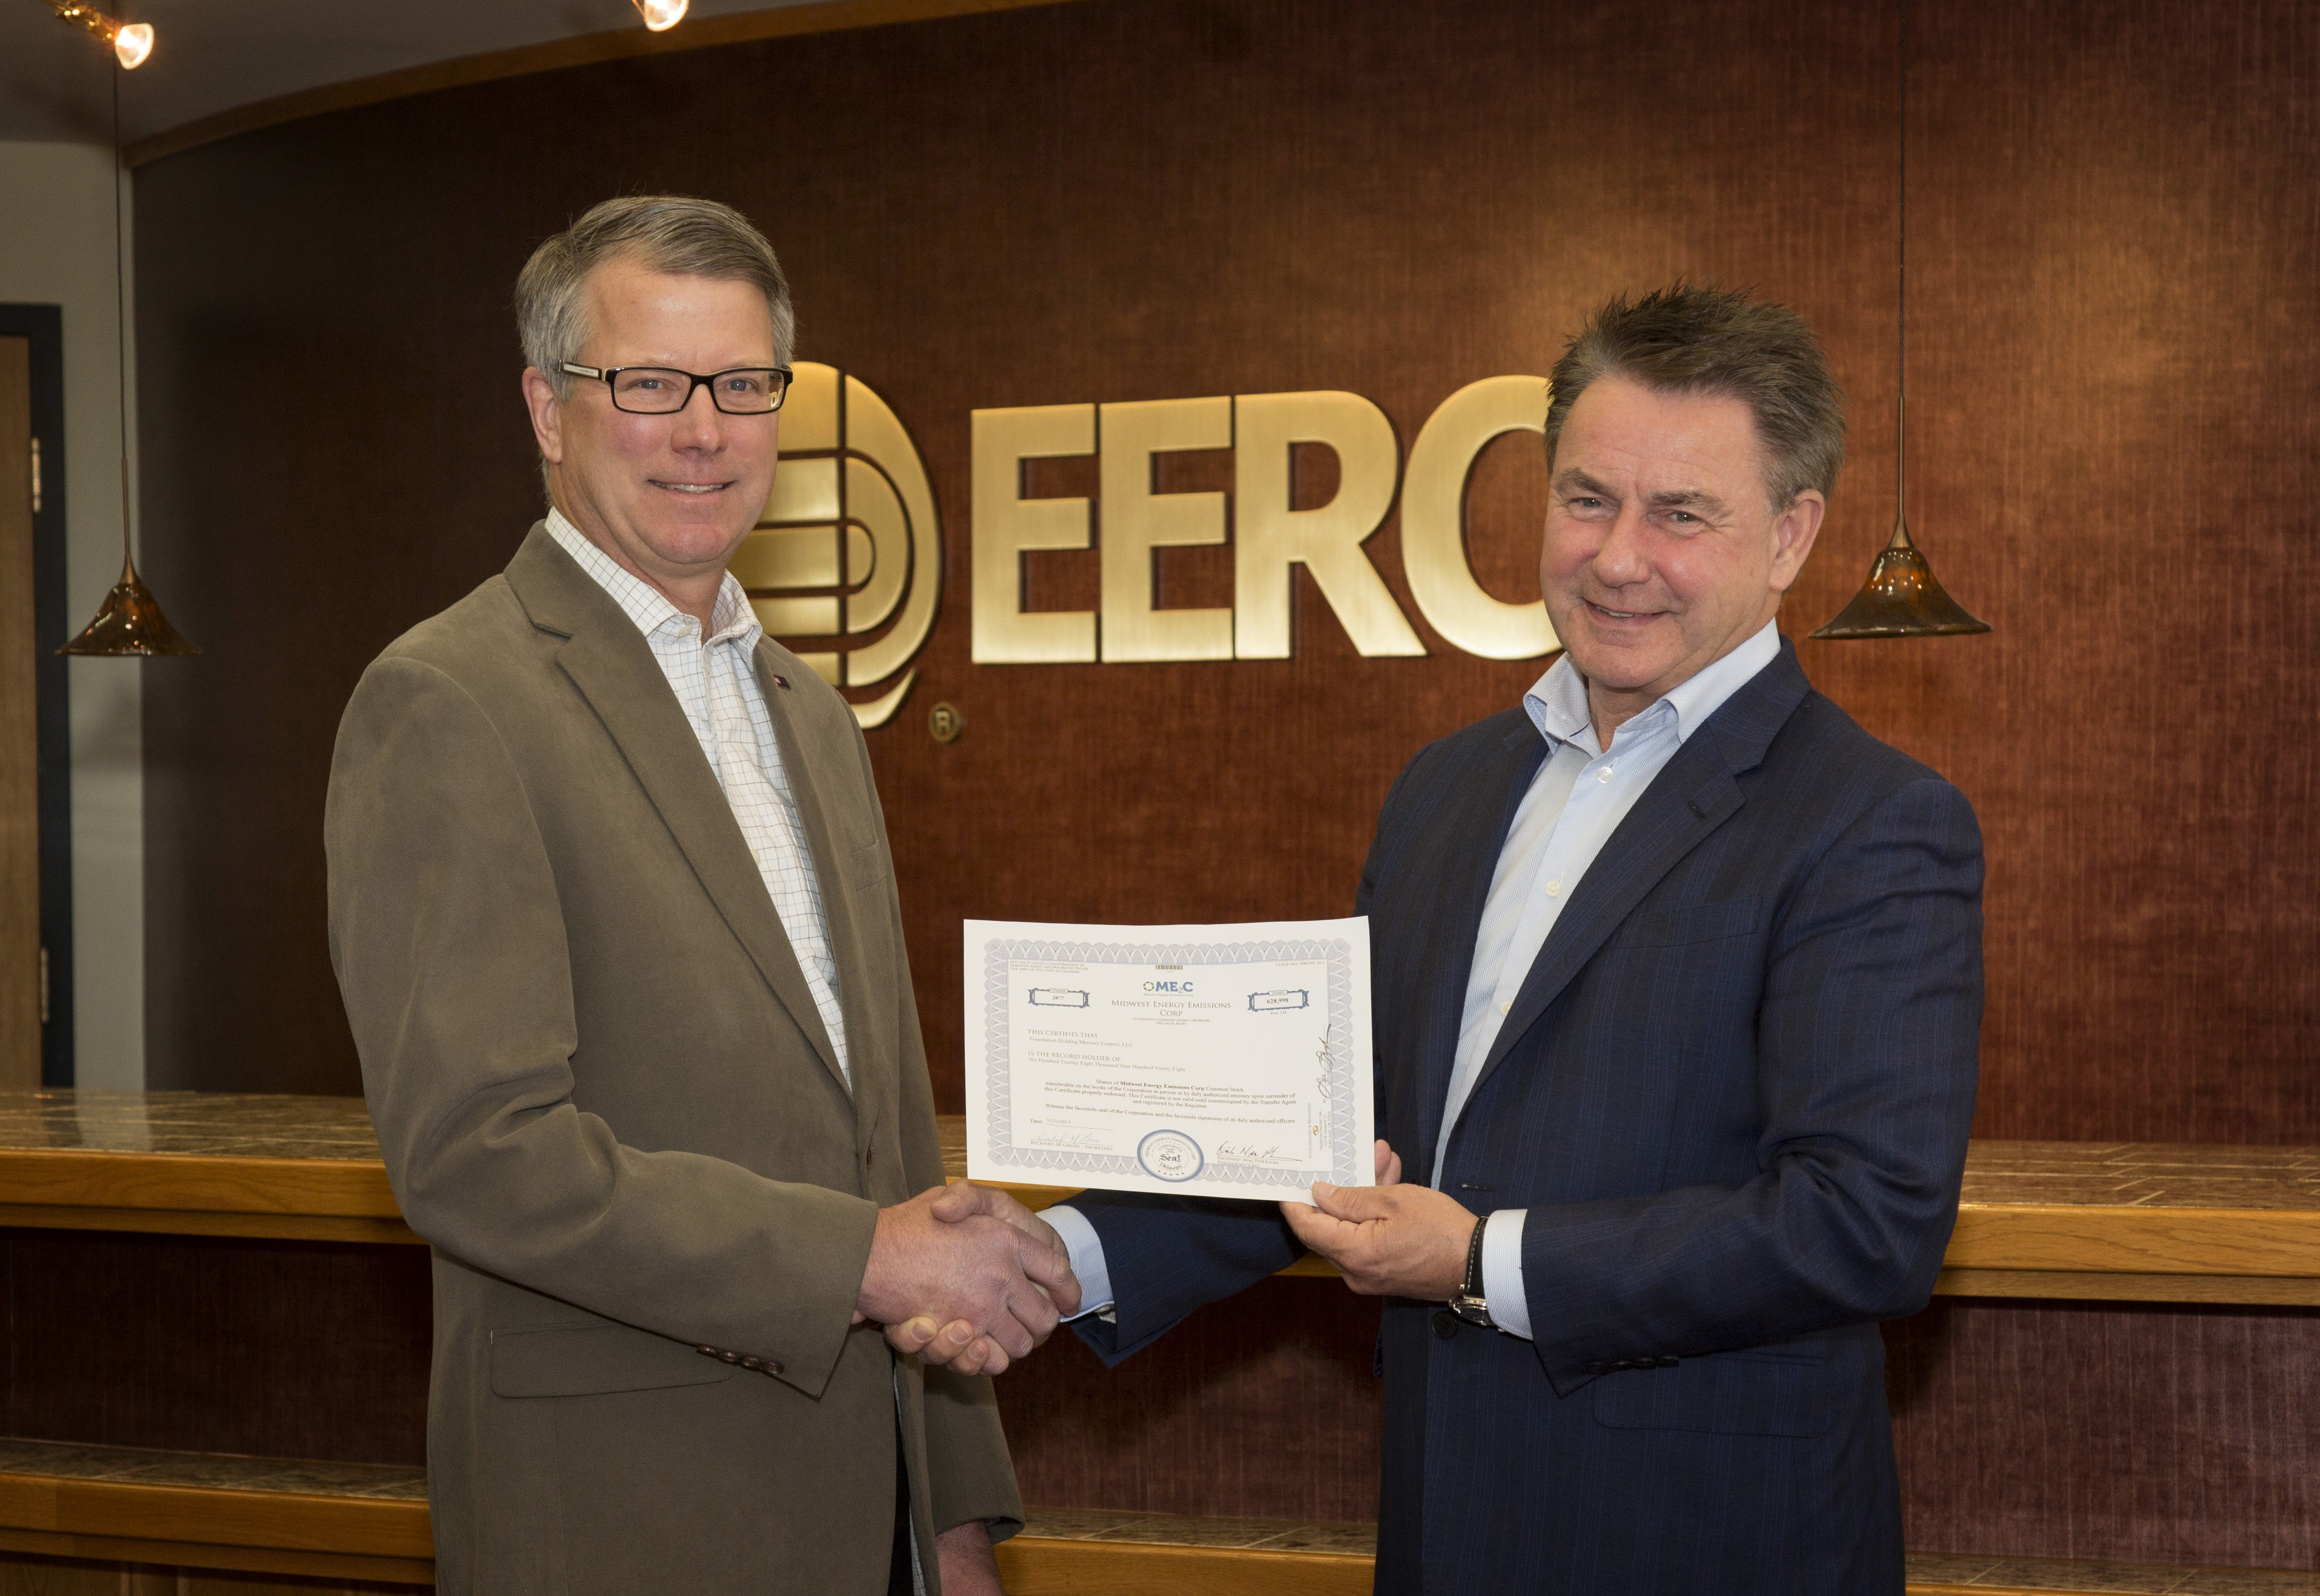 EERCF Board Chair John Snustad with ME2C CEO Richard MacPherson